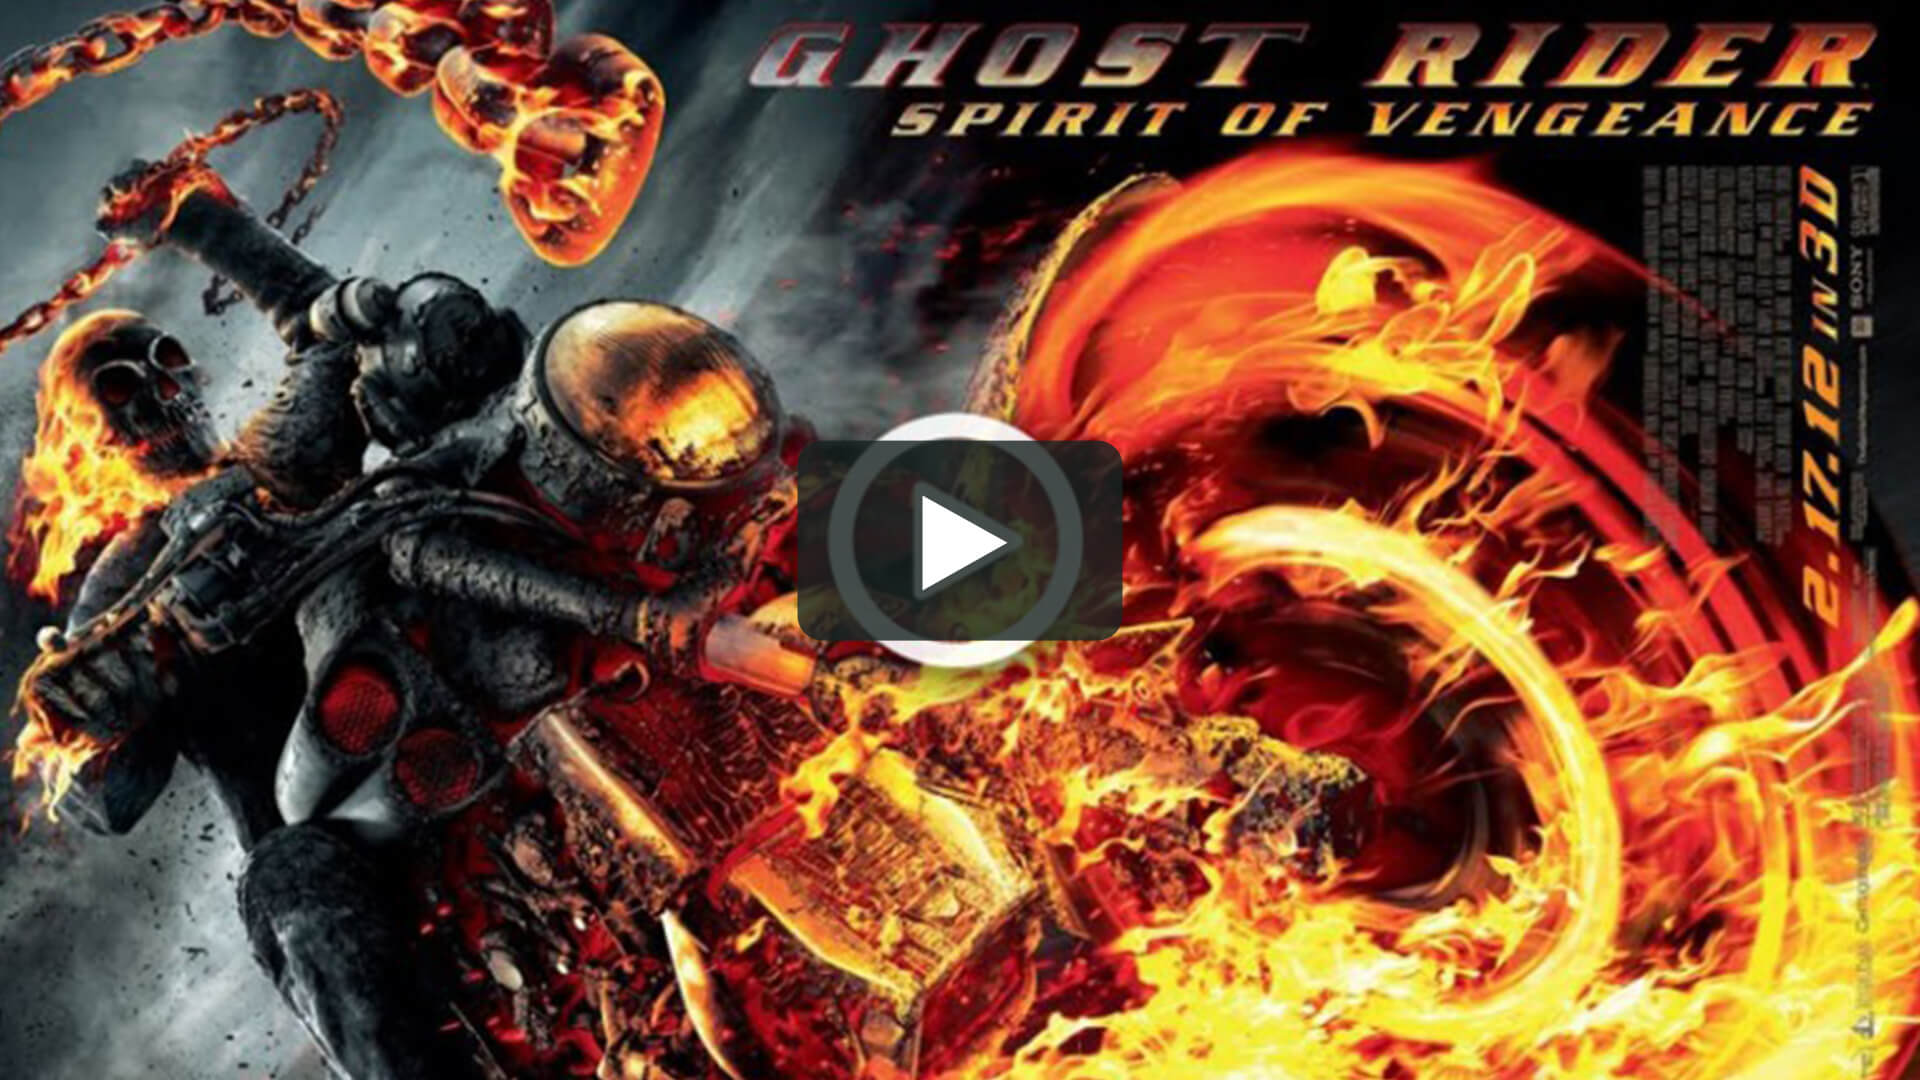 Ghost Rider: Spirit of Vengeance - 靈魂戰車2:復仇時刻